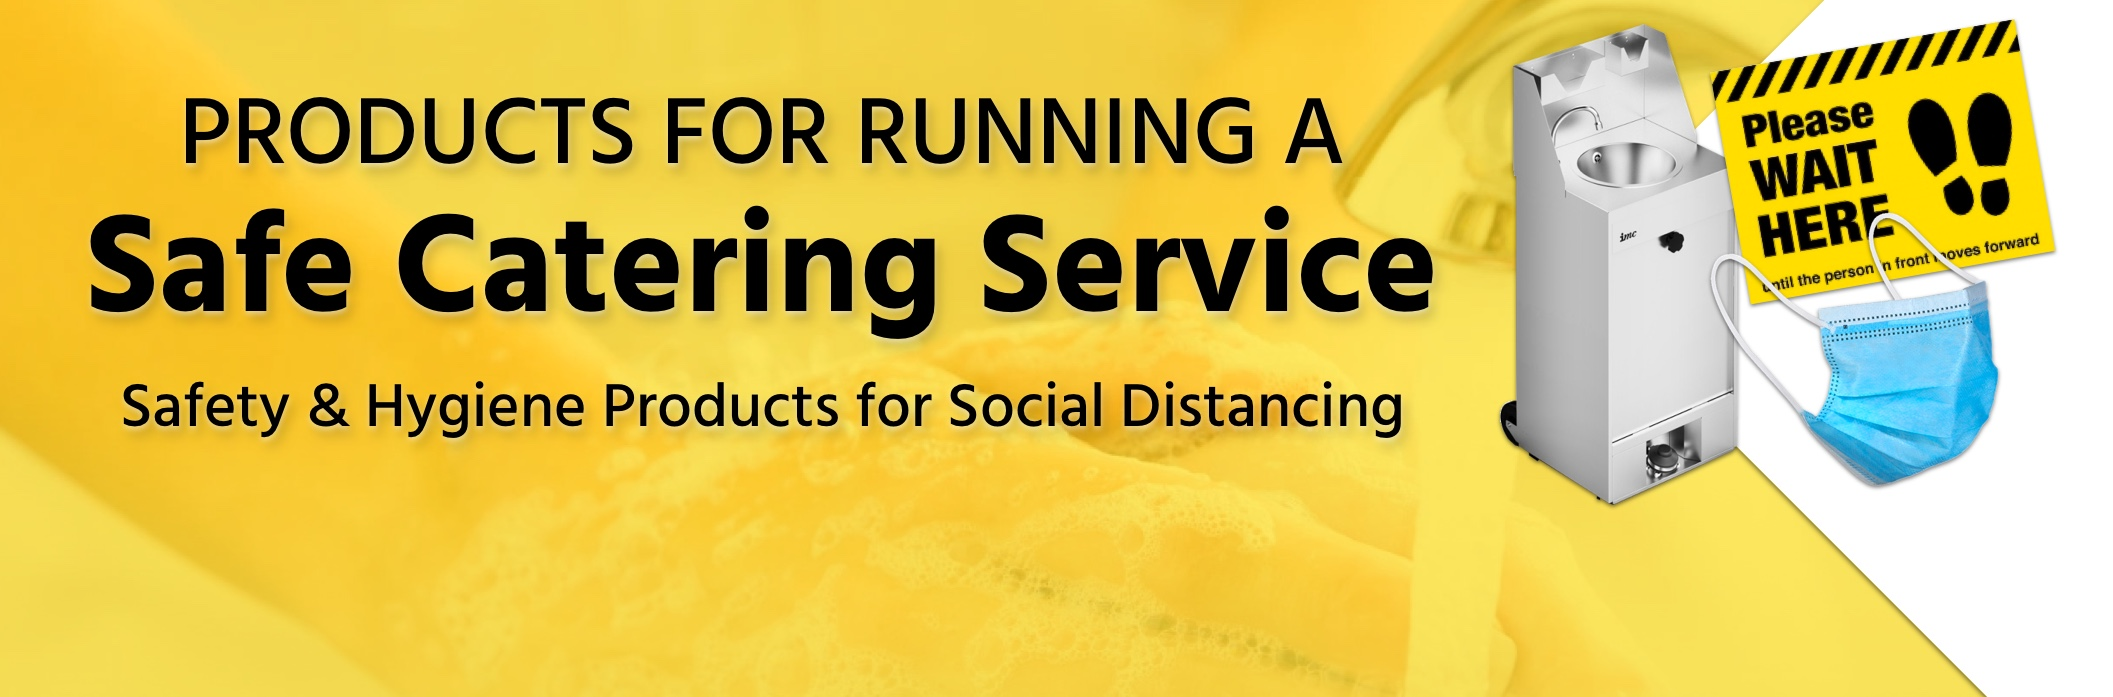 Social Distancing Catering Products